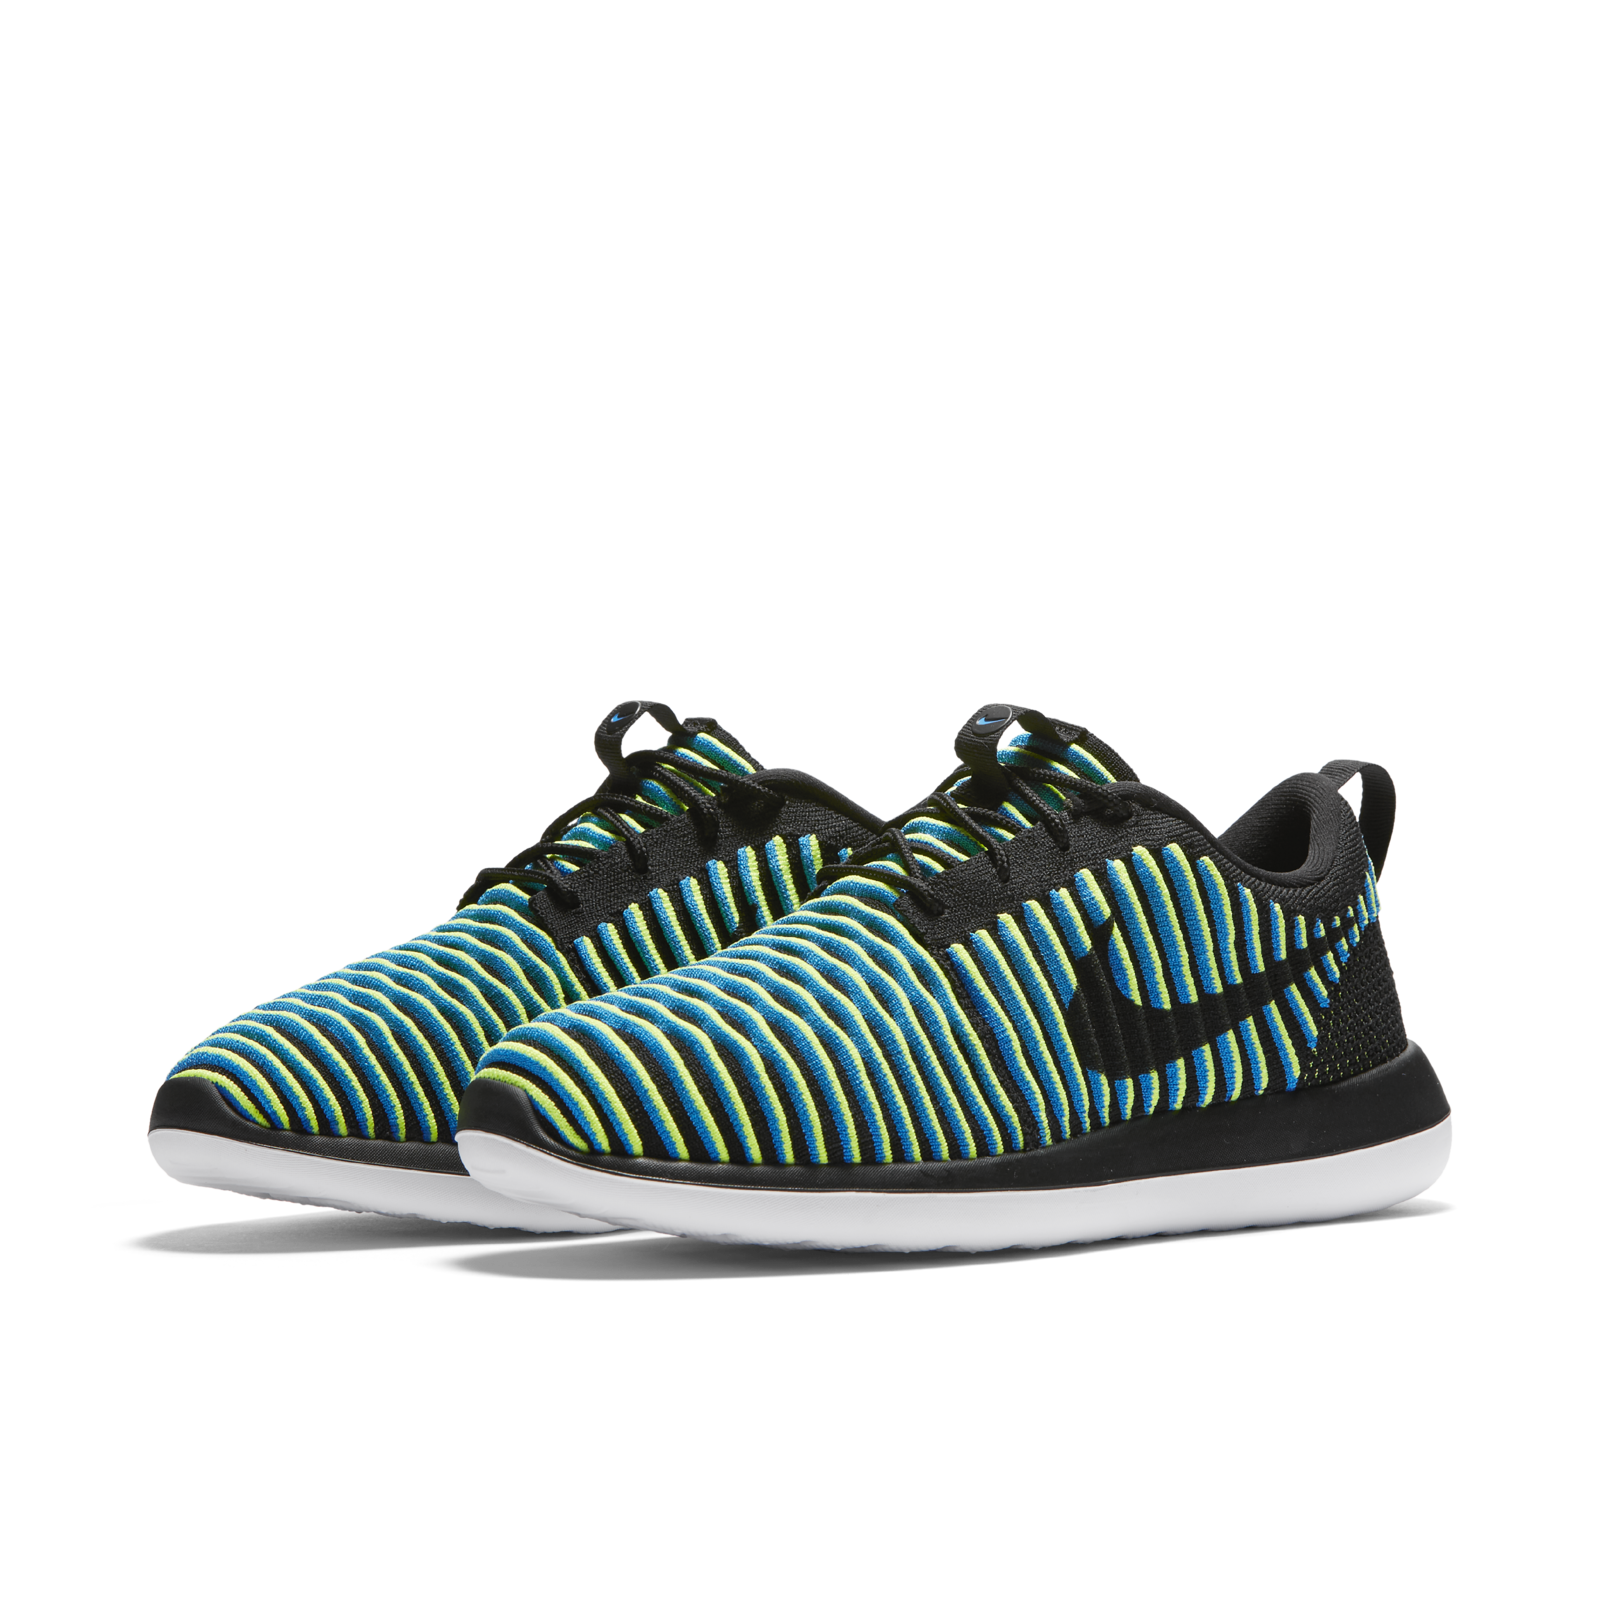 best service bf050 acd6c Nike Shoes Fashion Style Nike Roshe Two Flyknit 365 Womens